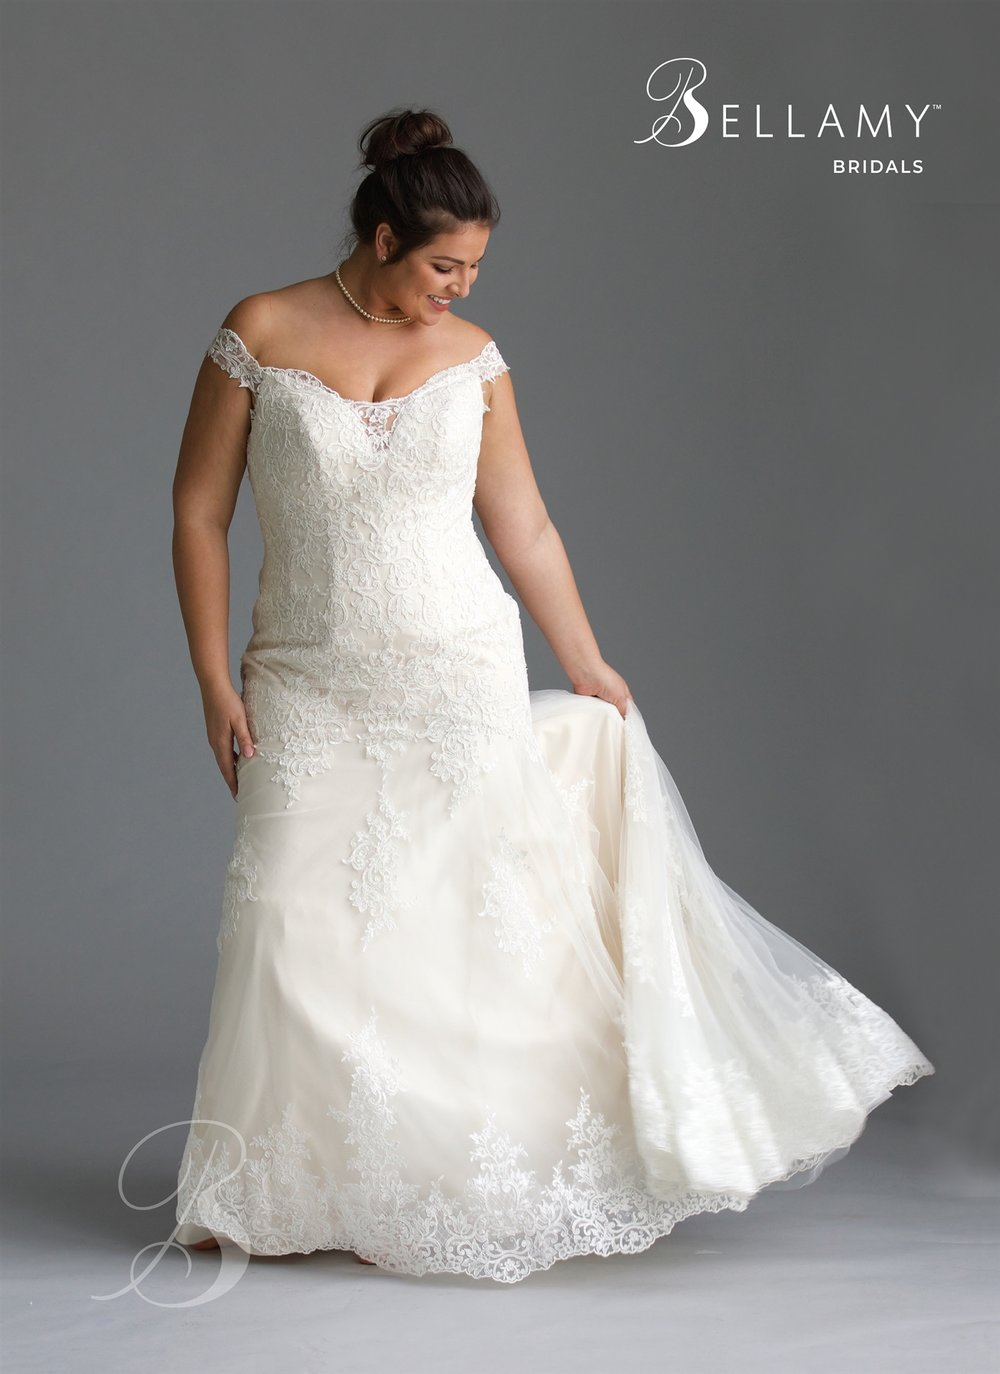 Plus Size Dress at Brilliant Bridal